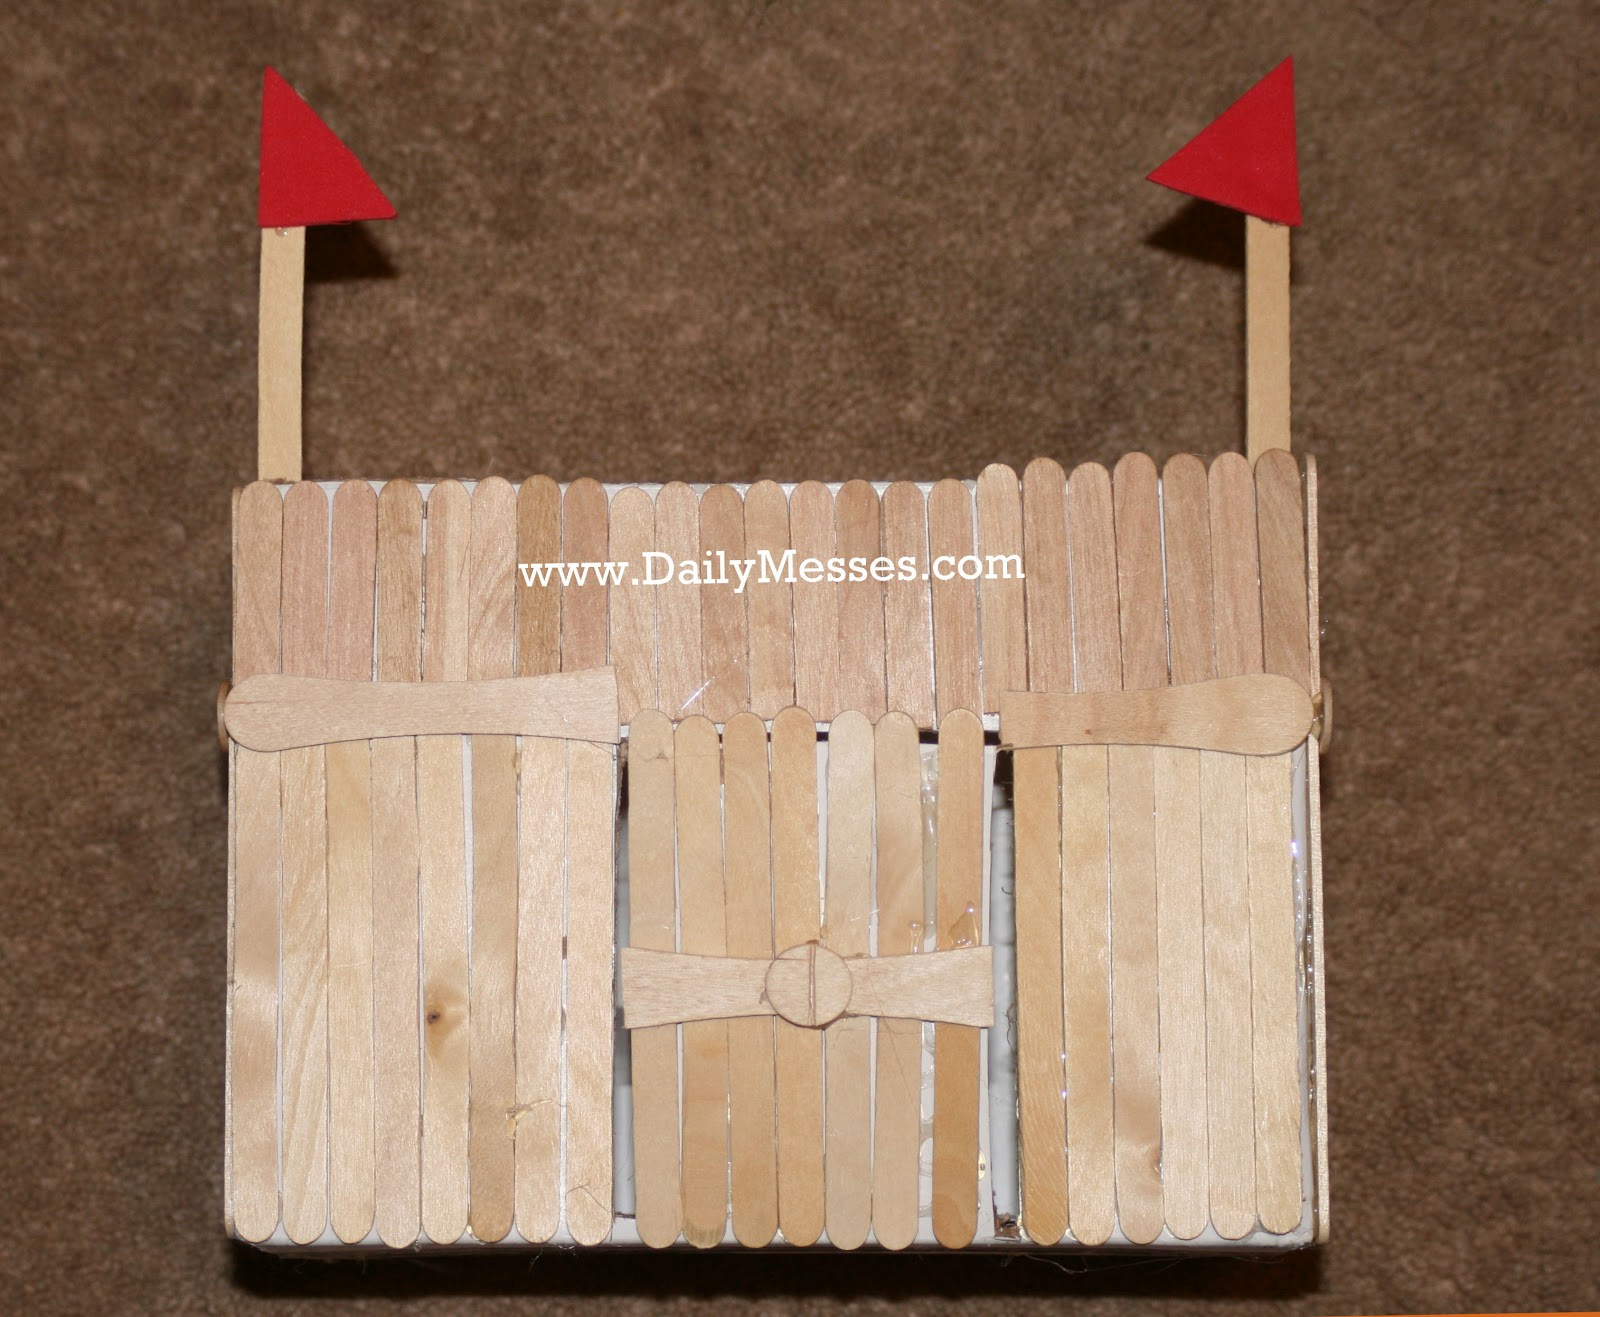 Daily messes fun with popsicle sticks homemade fort and What to make out of popsicle sticks